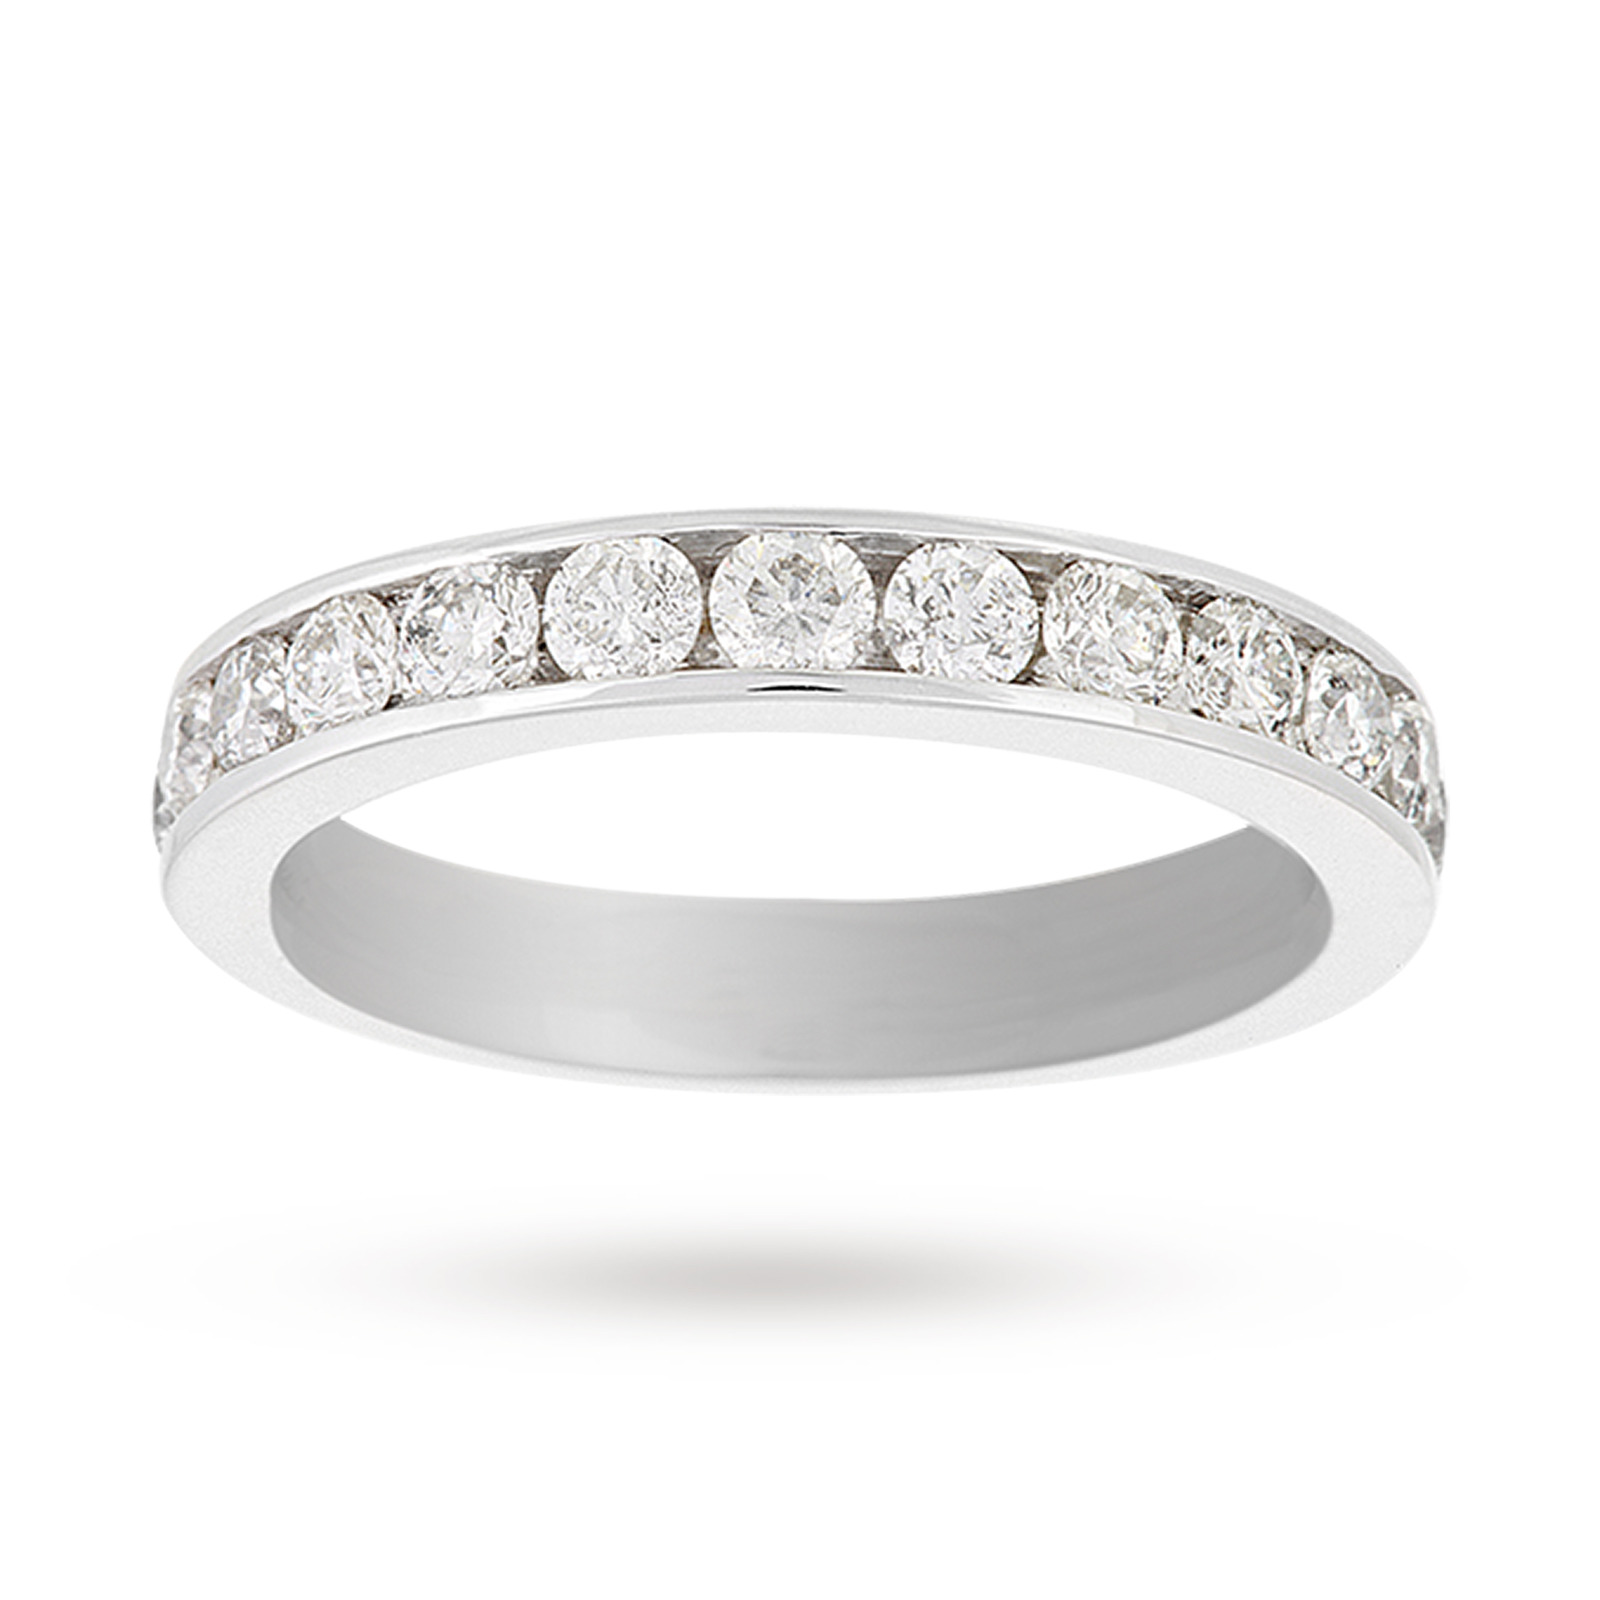 Platinum 1.00 Carat Eternity Ring